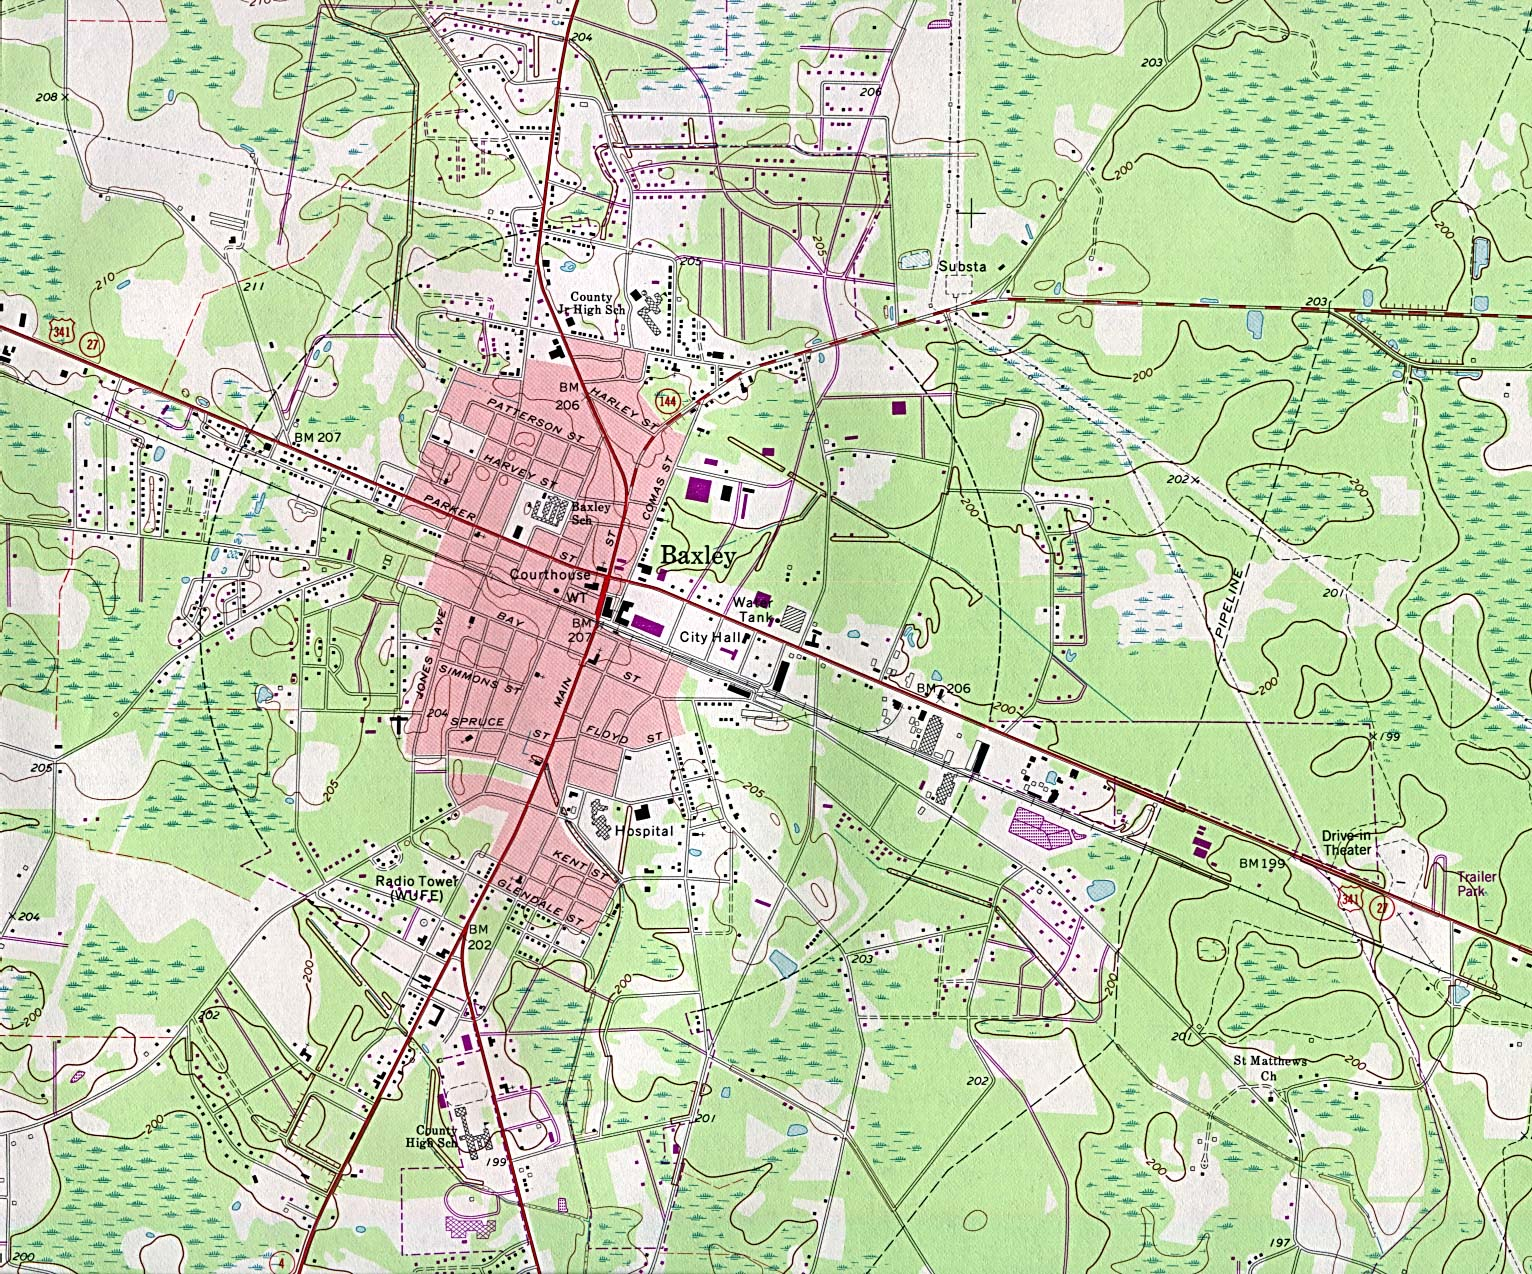 Baxley Topographic City Map, Georgia, United States